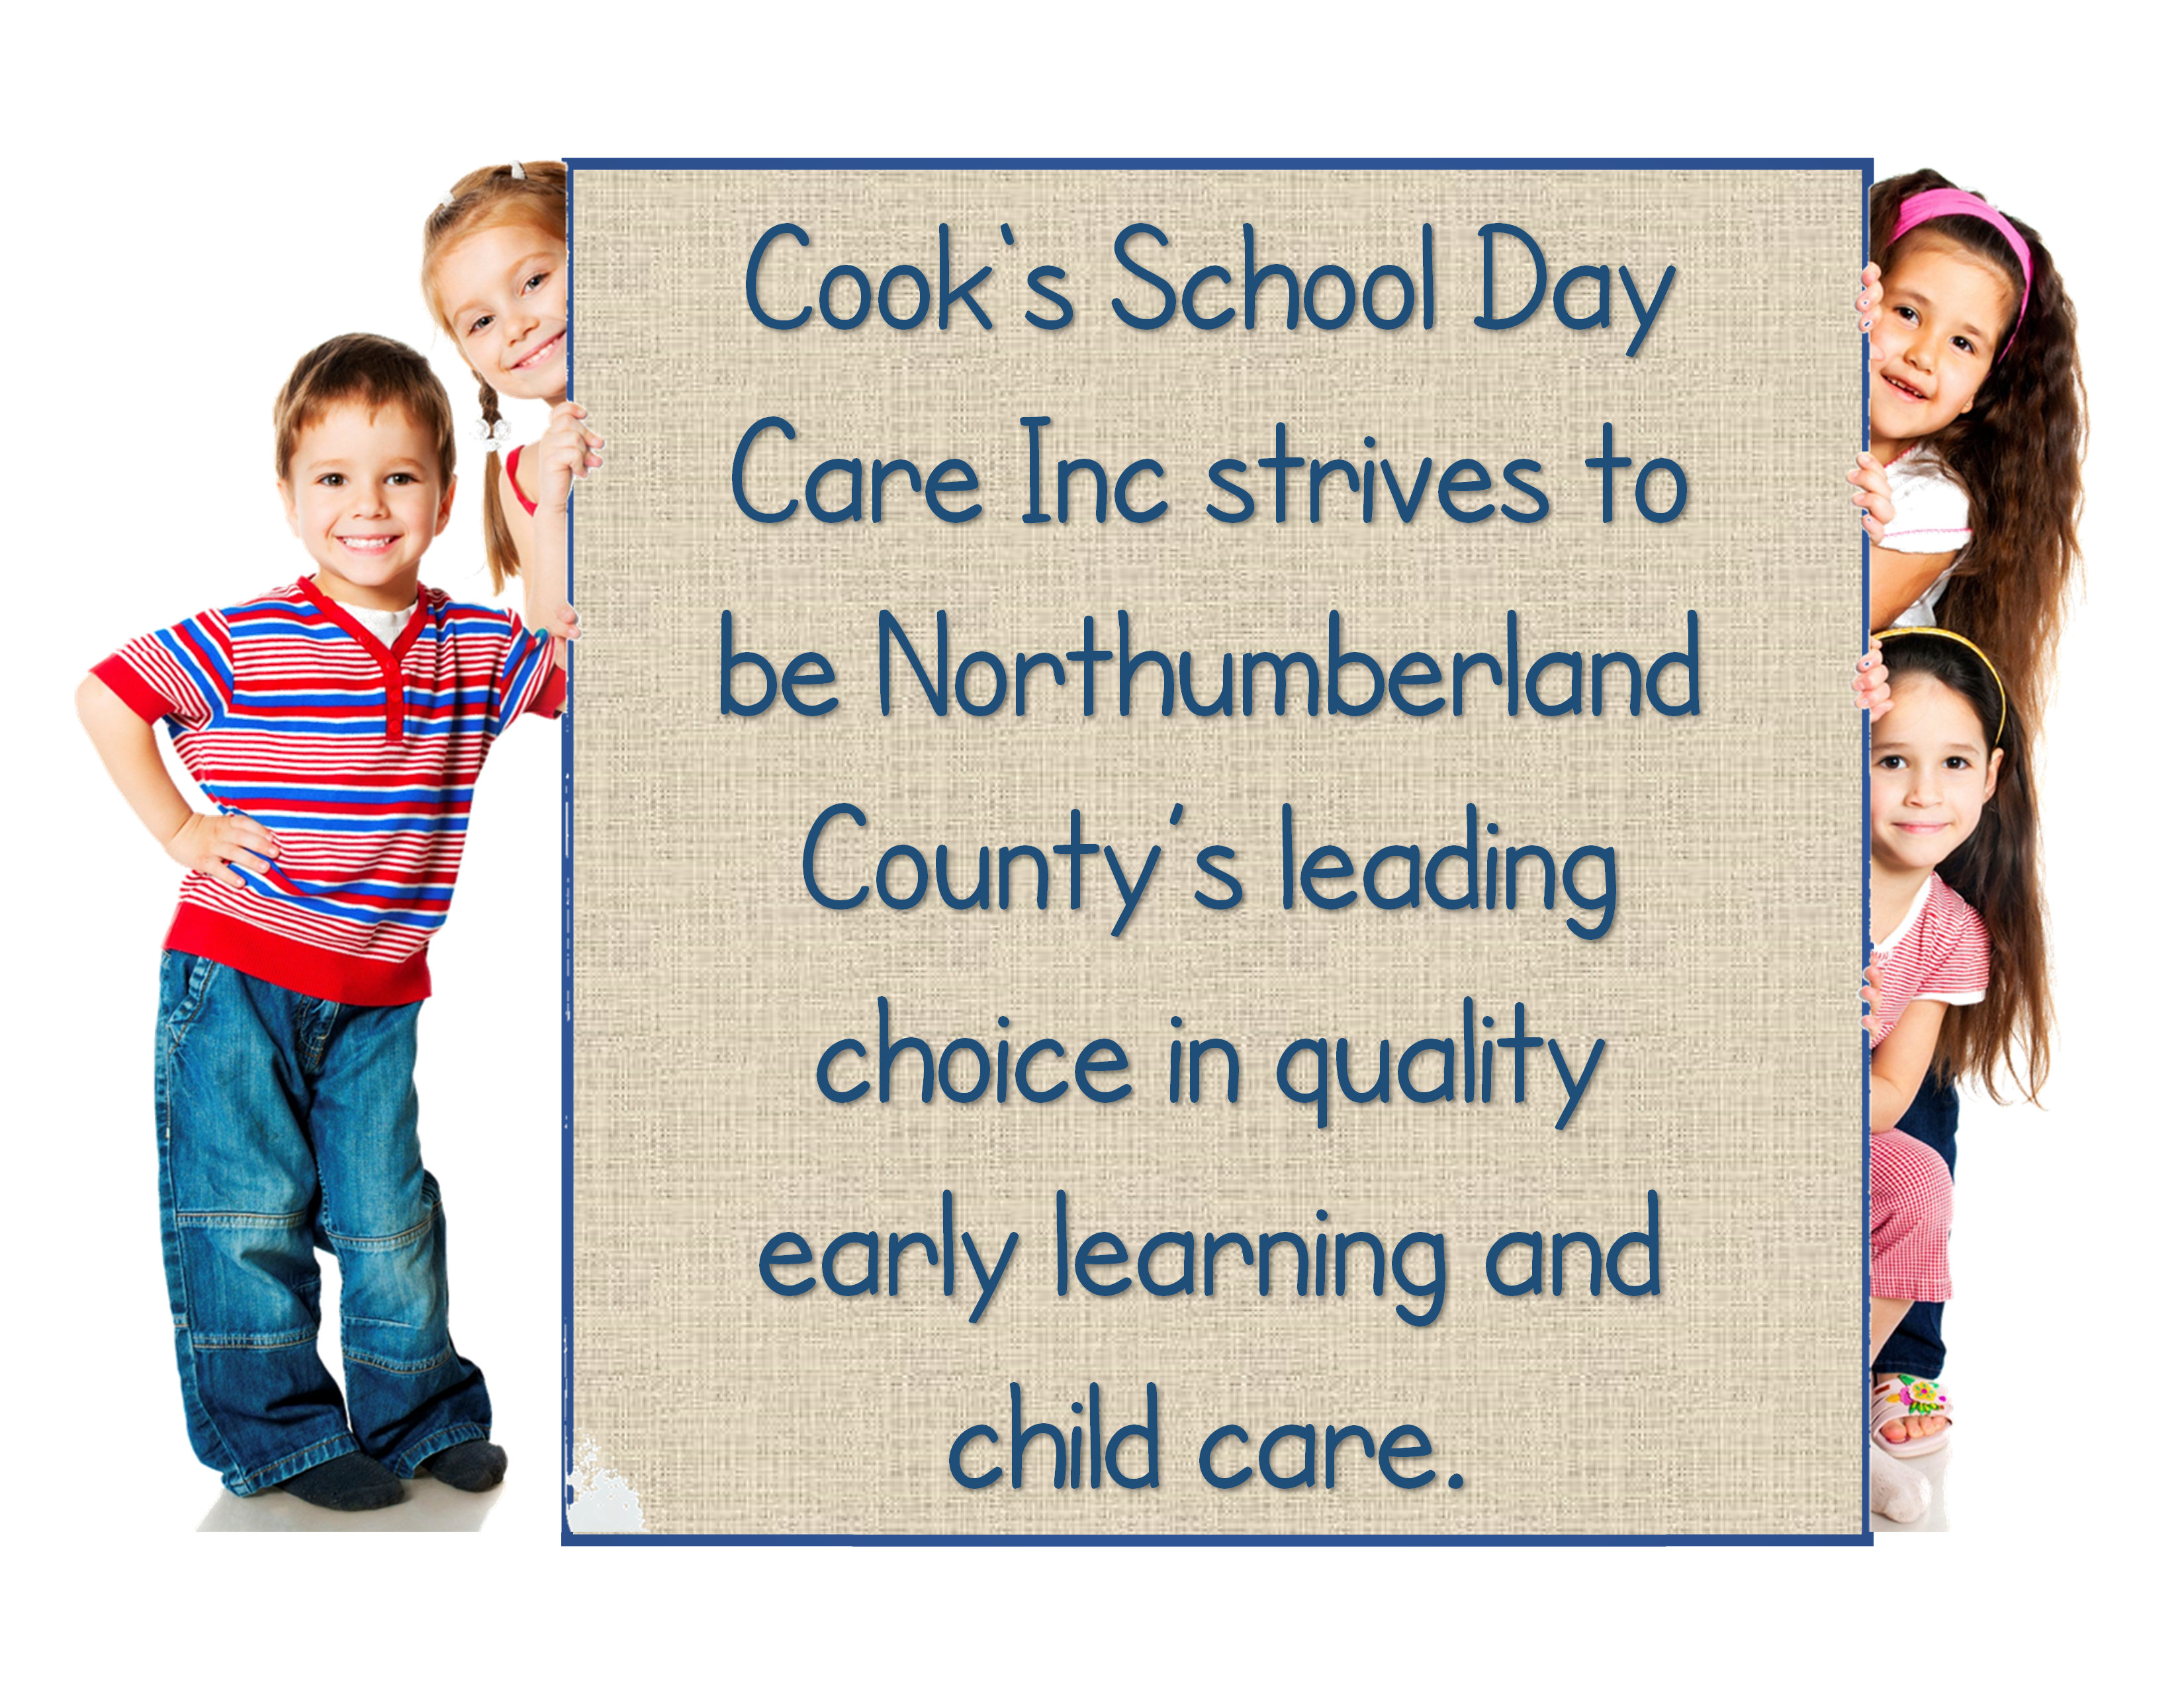 Victoria Park Child Care Centre (Cook's School Day Care Inc.) image 3